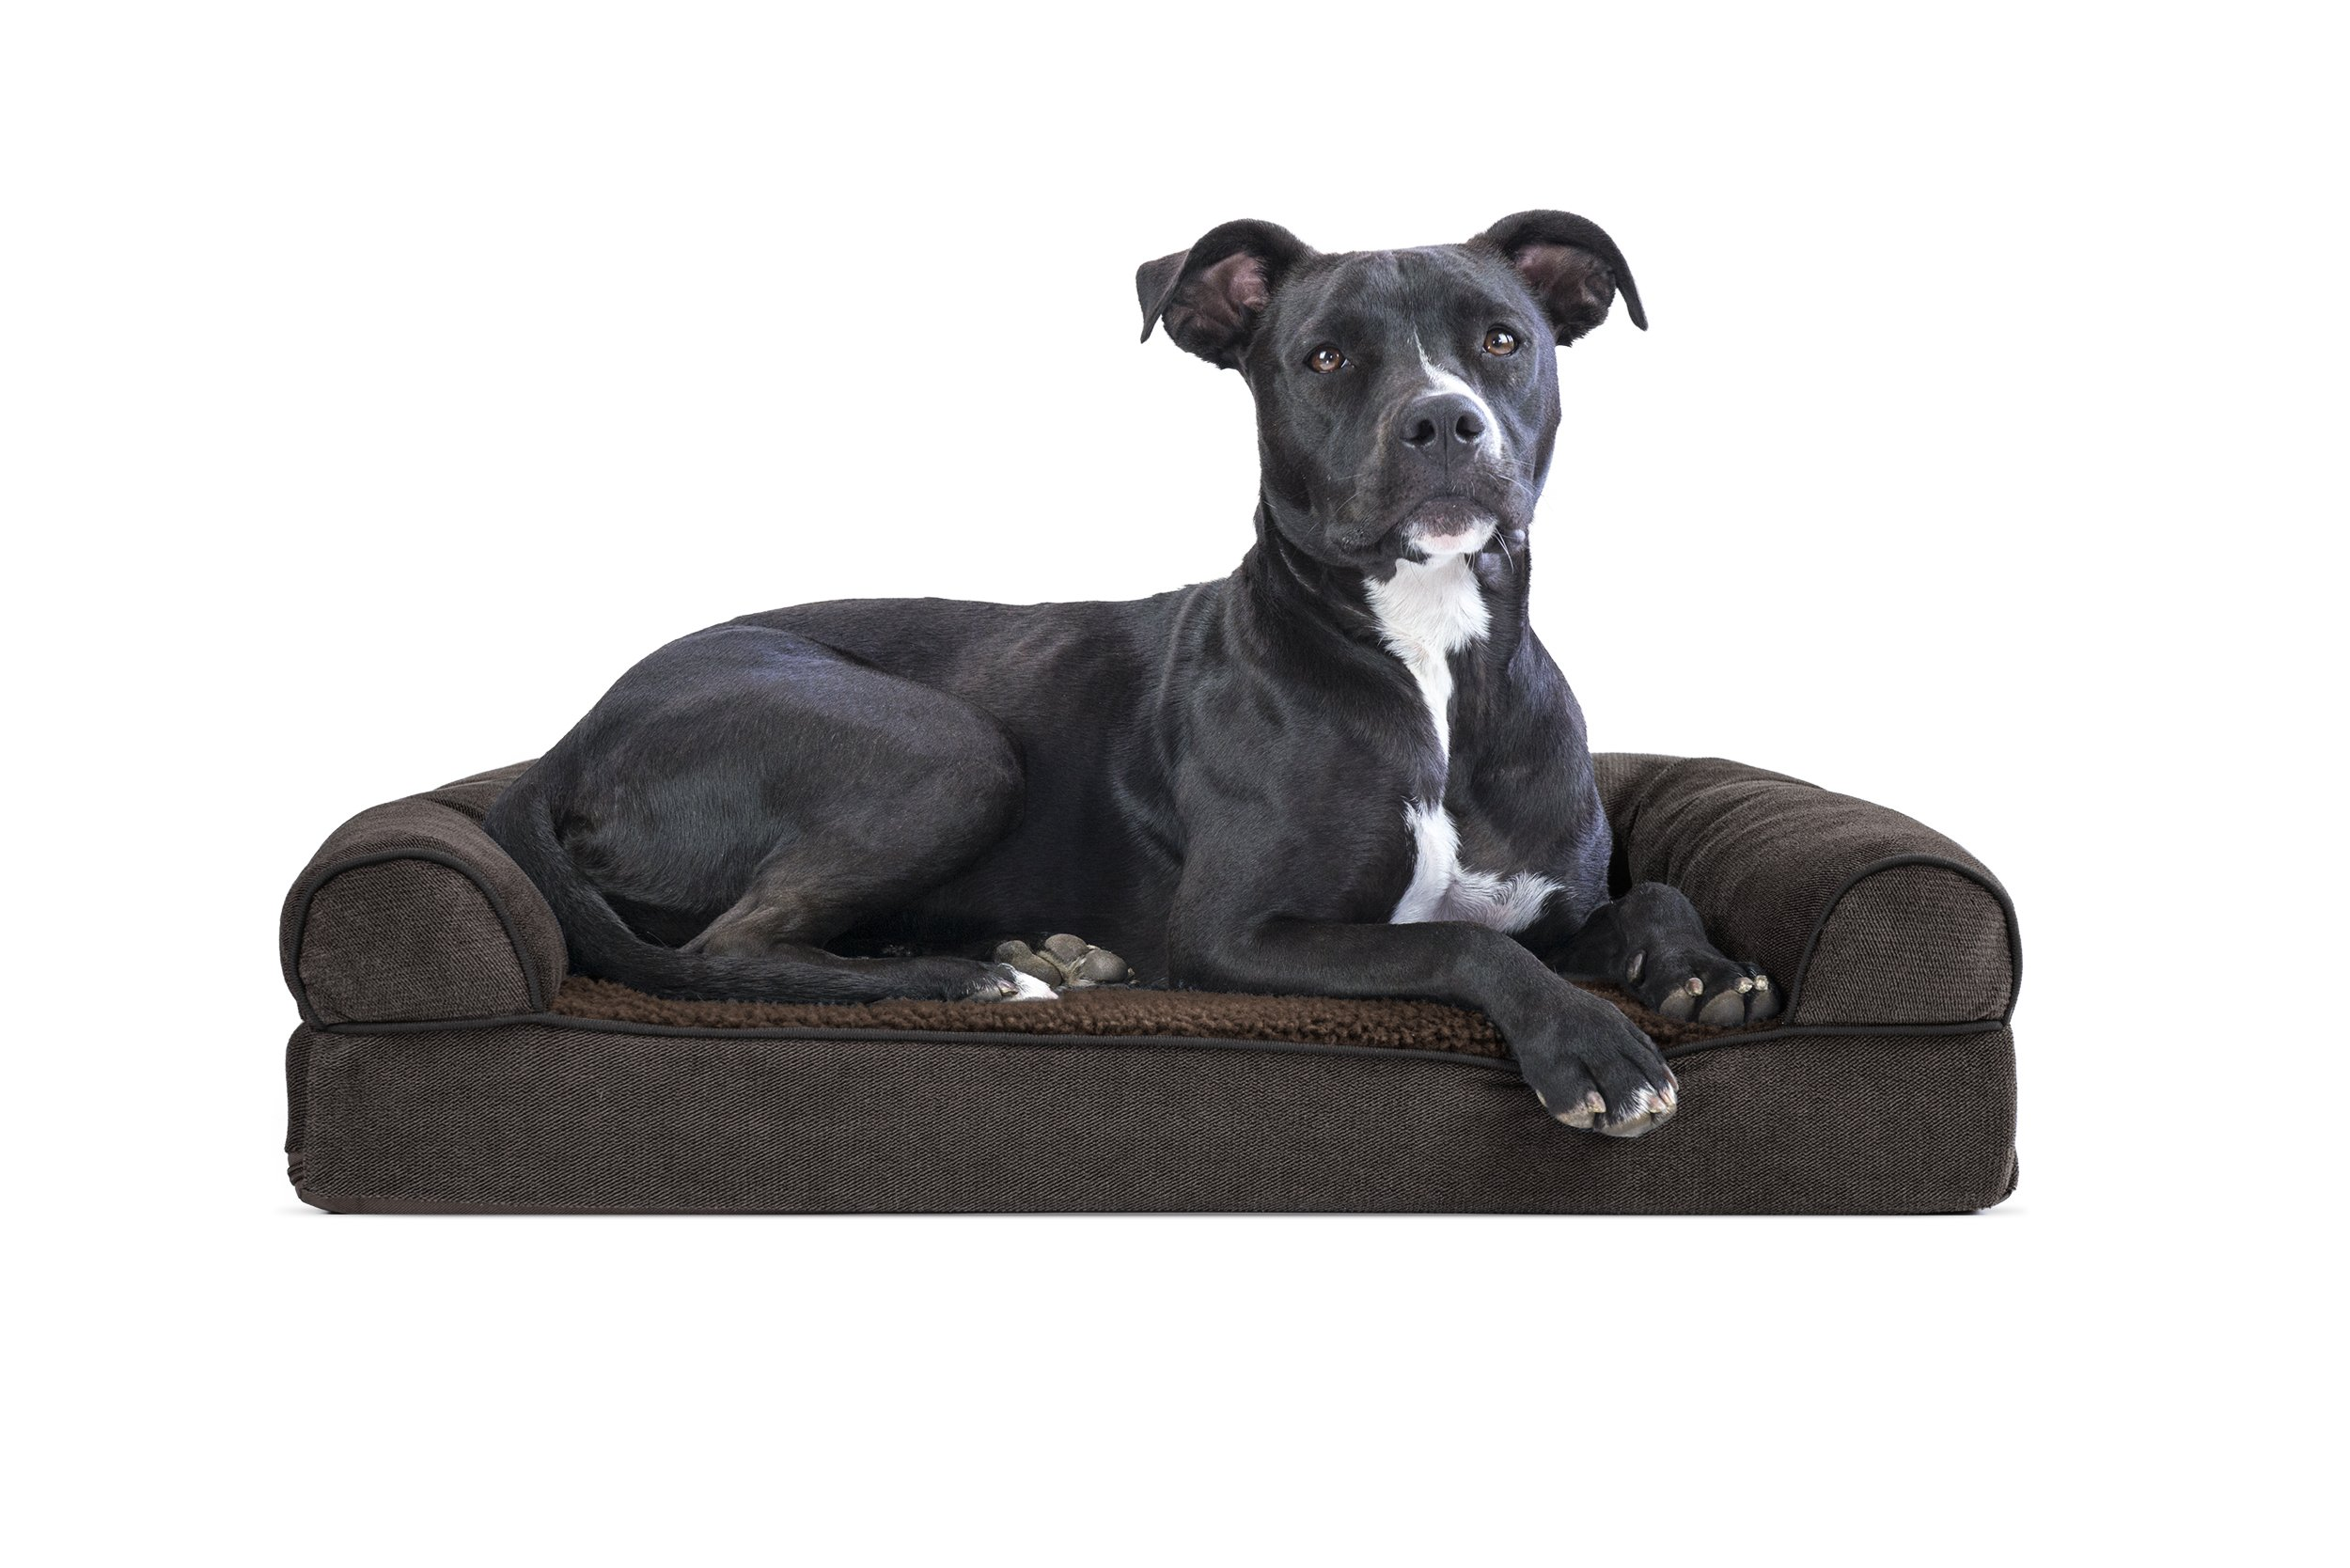 Furhaven Pet Dog Bed | Memory Foam Faux Fleece & Chenille Couch Sofa-Style Pet Bed for Dogs & Cats, Coffee, Medium